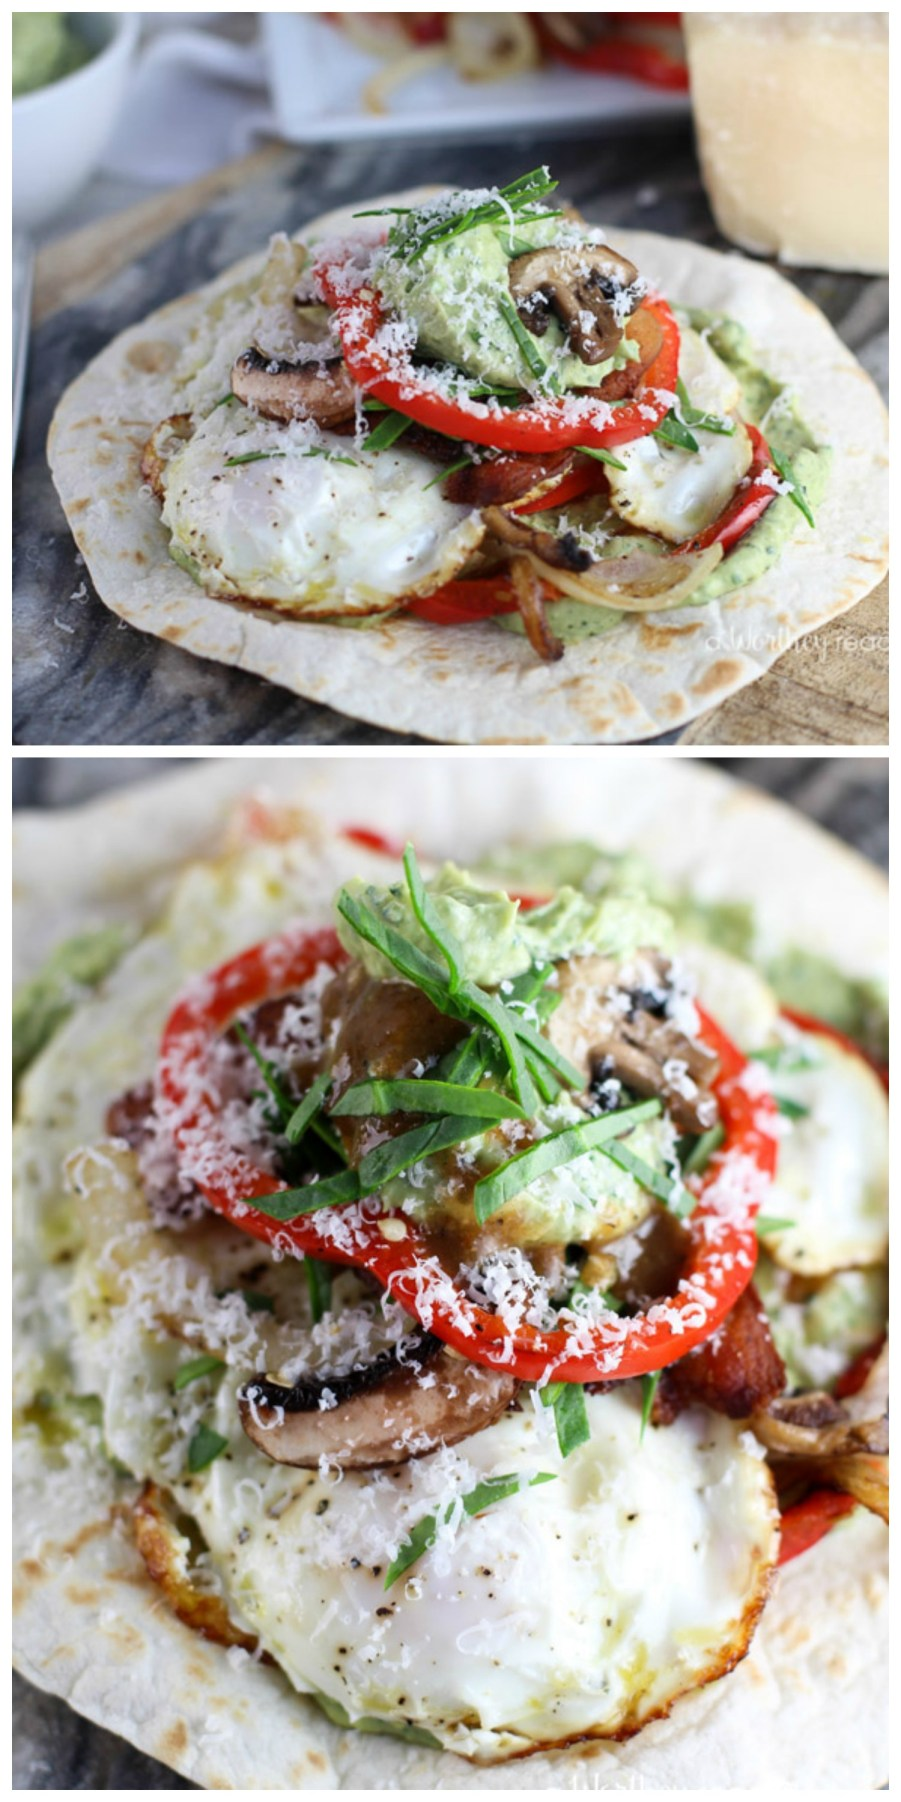 Our easy Soft Breakfast Tacos are kinda awesome! They are filled to bursting with so much good flavor you just might lose your mind but in a good way.